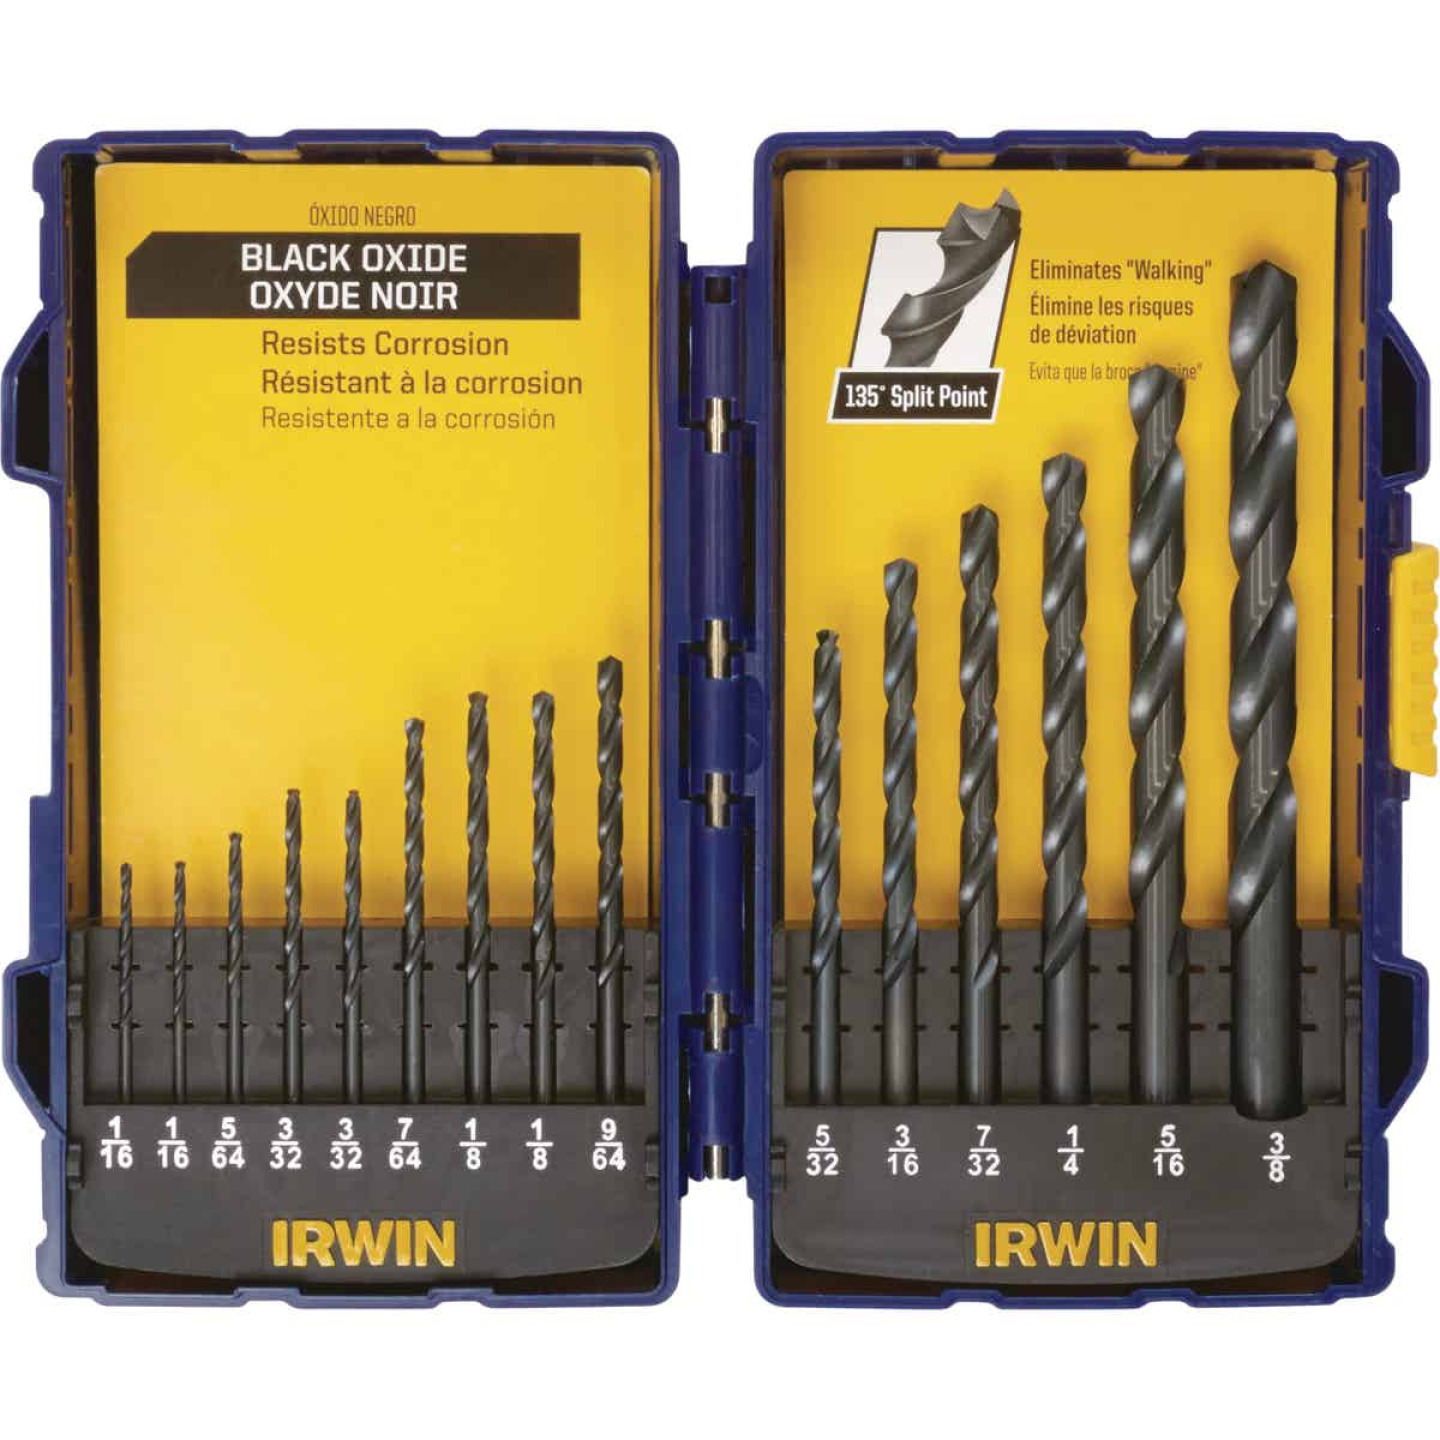 Irwin 15-Piece Black Oxide Drill Bit Set Image 1